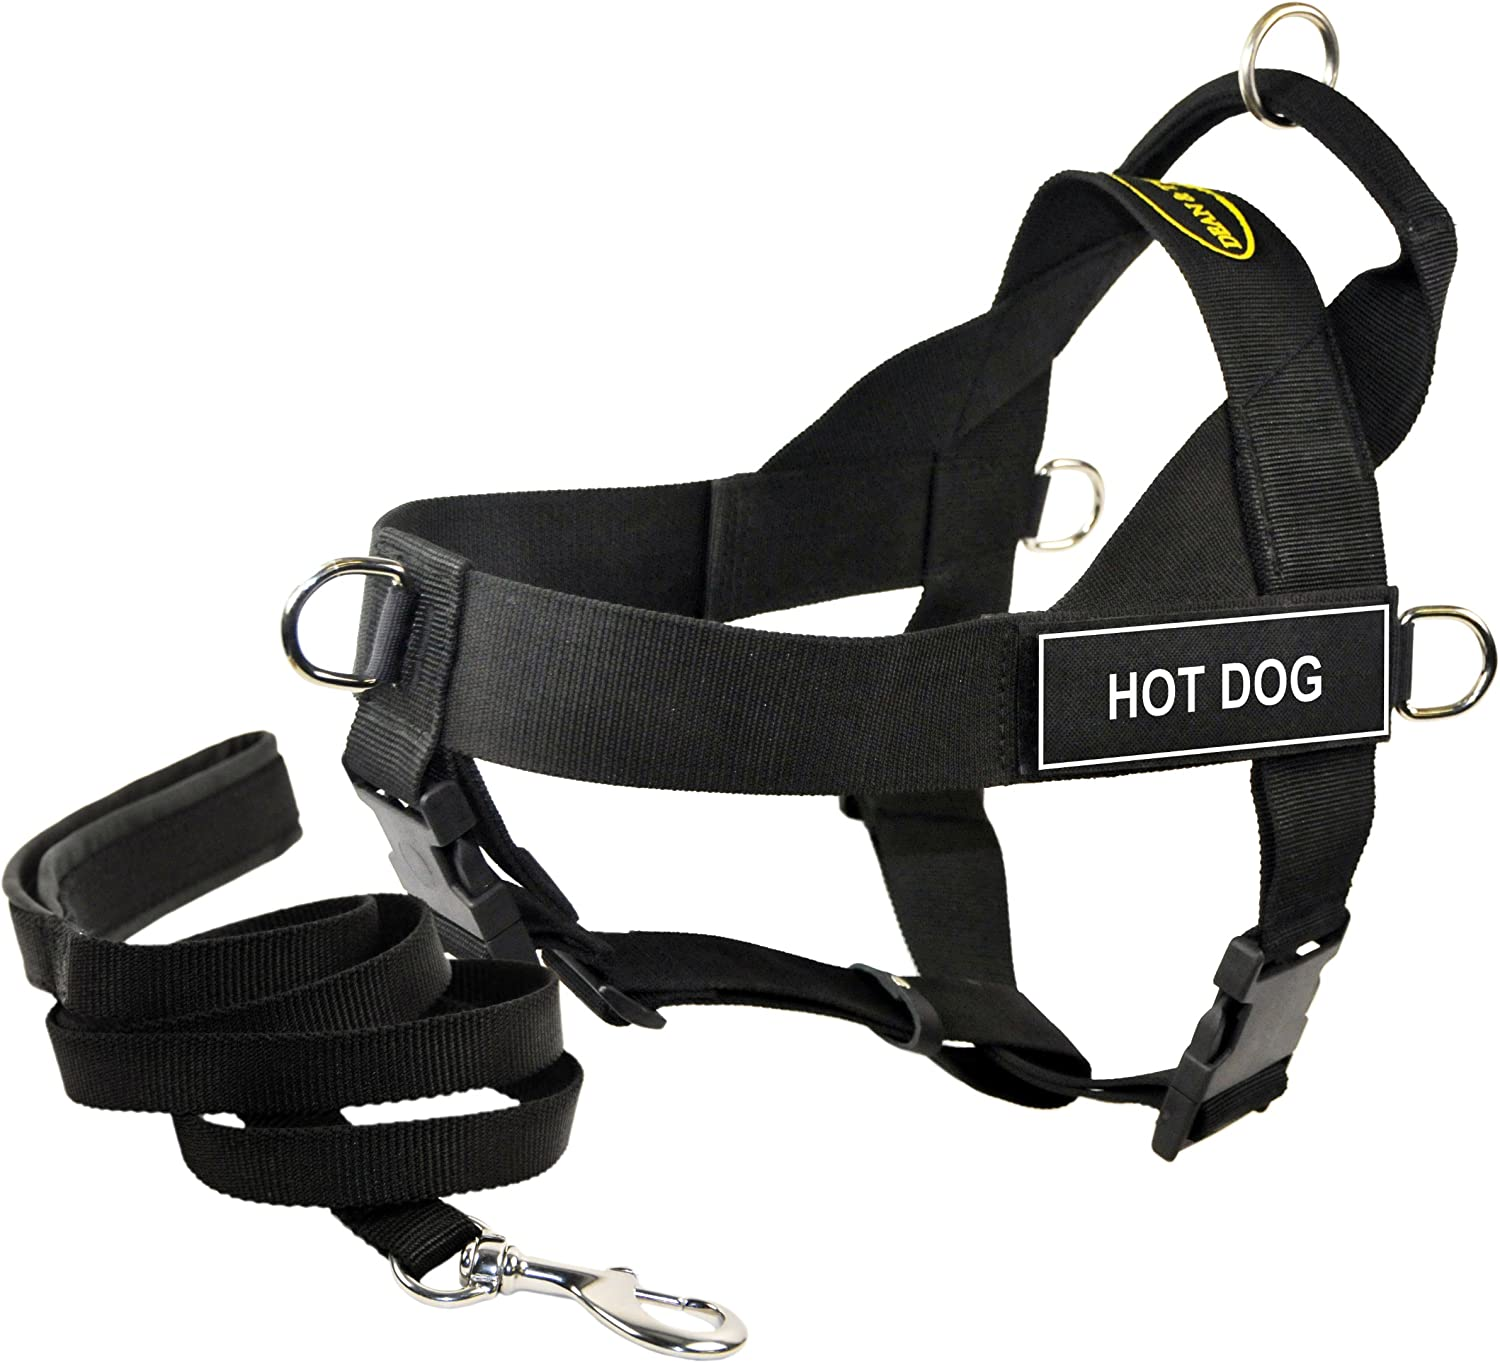 Dean & Tyler's DT Universal HOT DOG Harness, Small, with 6 ft Padded Puppy Leash.